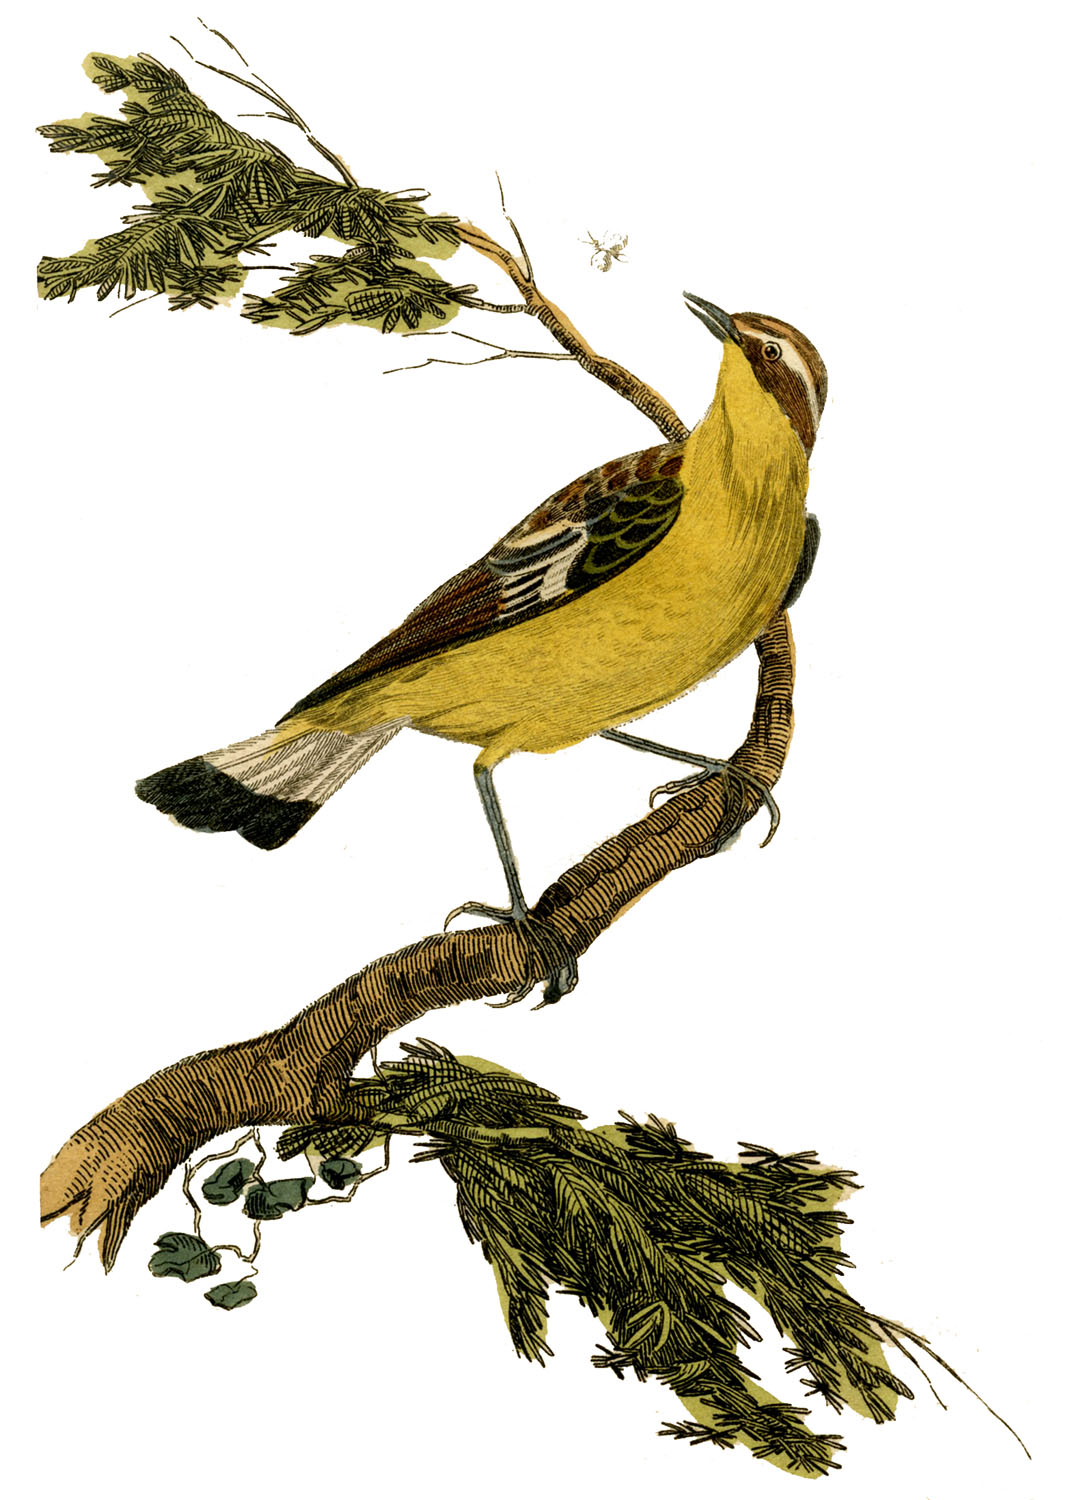 It is an image of Massif Printable Bird Pictures